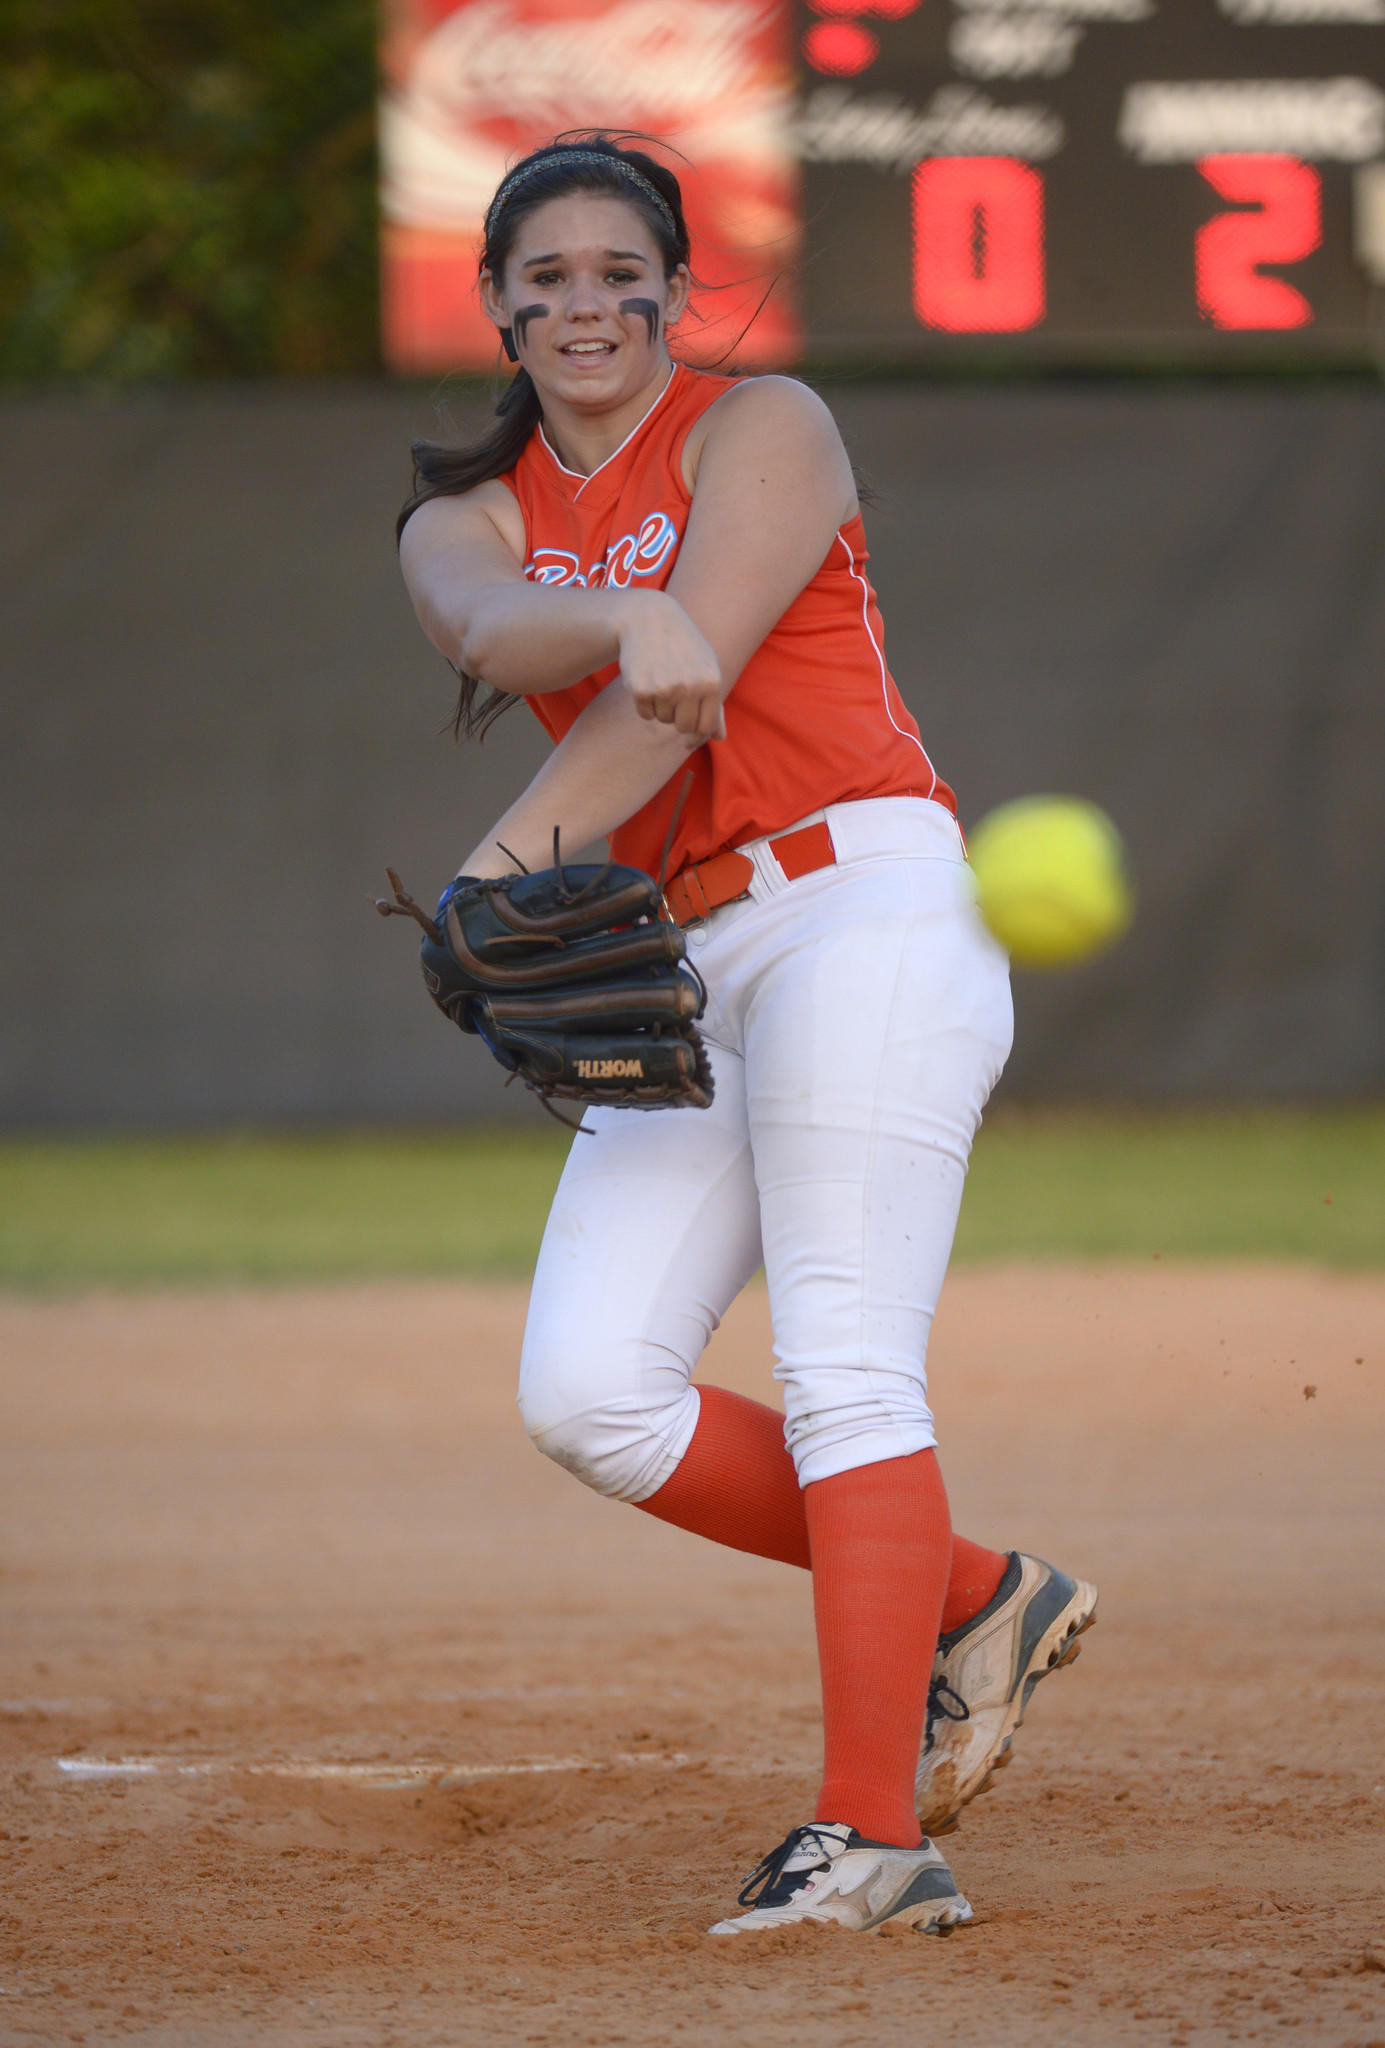 Boone's Chase Cassady pitched a 16 strikeout 2-hitter in a 4-2 victory over Lake Mary Friday.